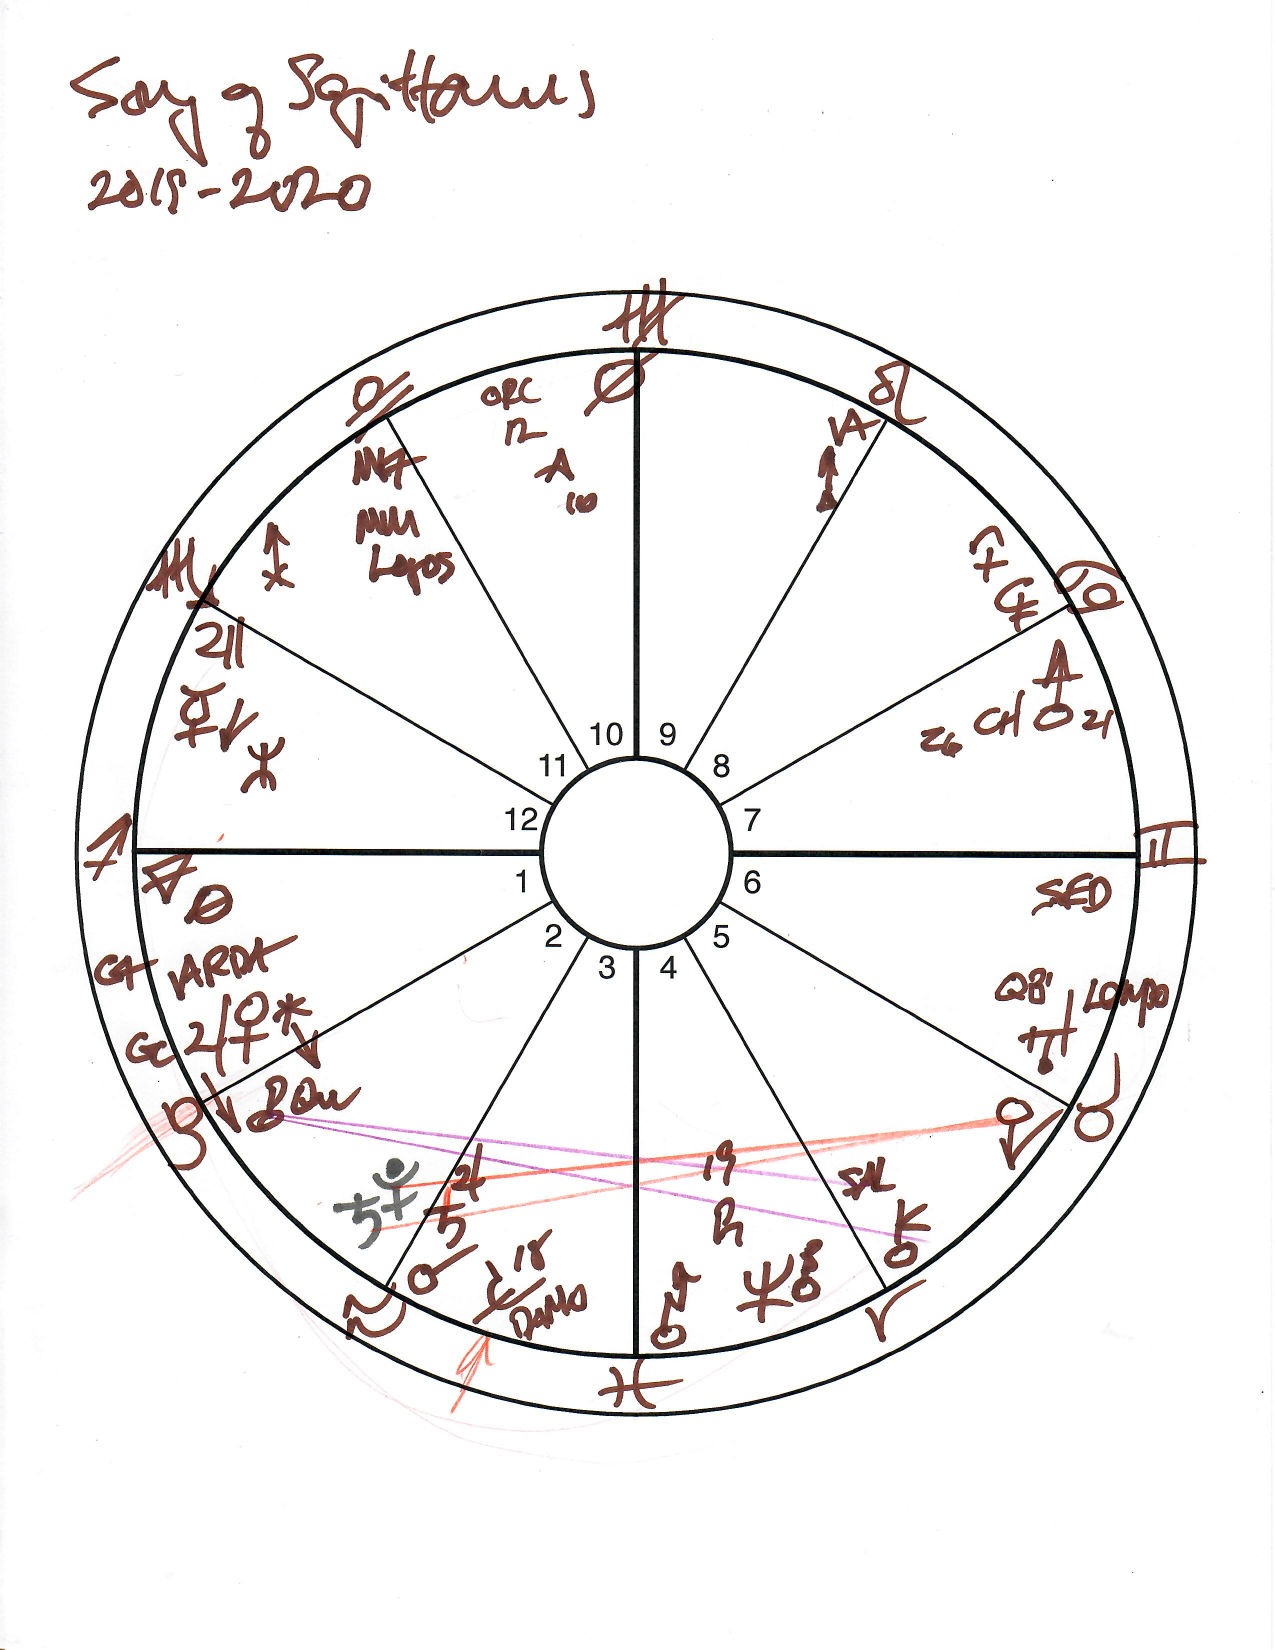 Chart for Sagittarius. Click image for full-size version.